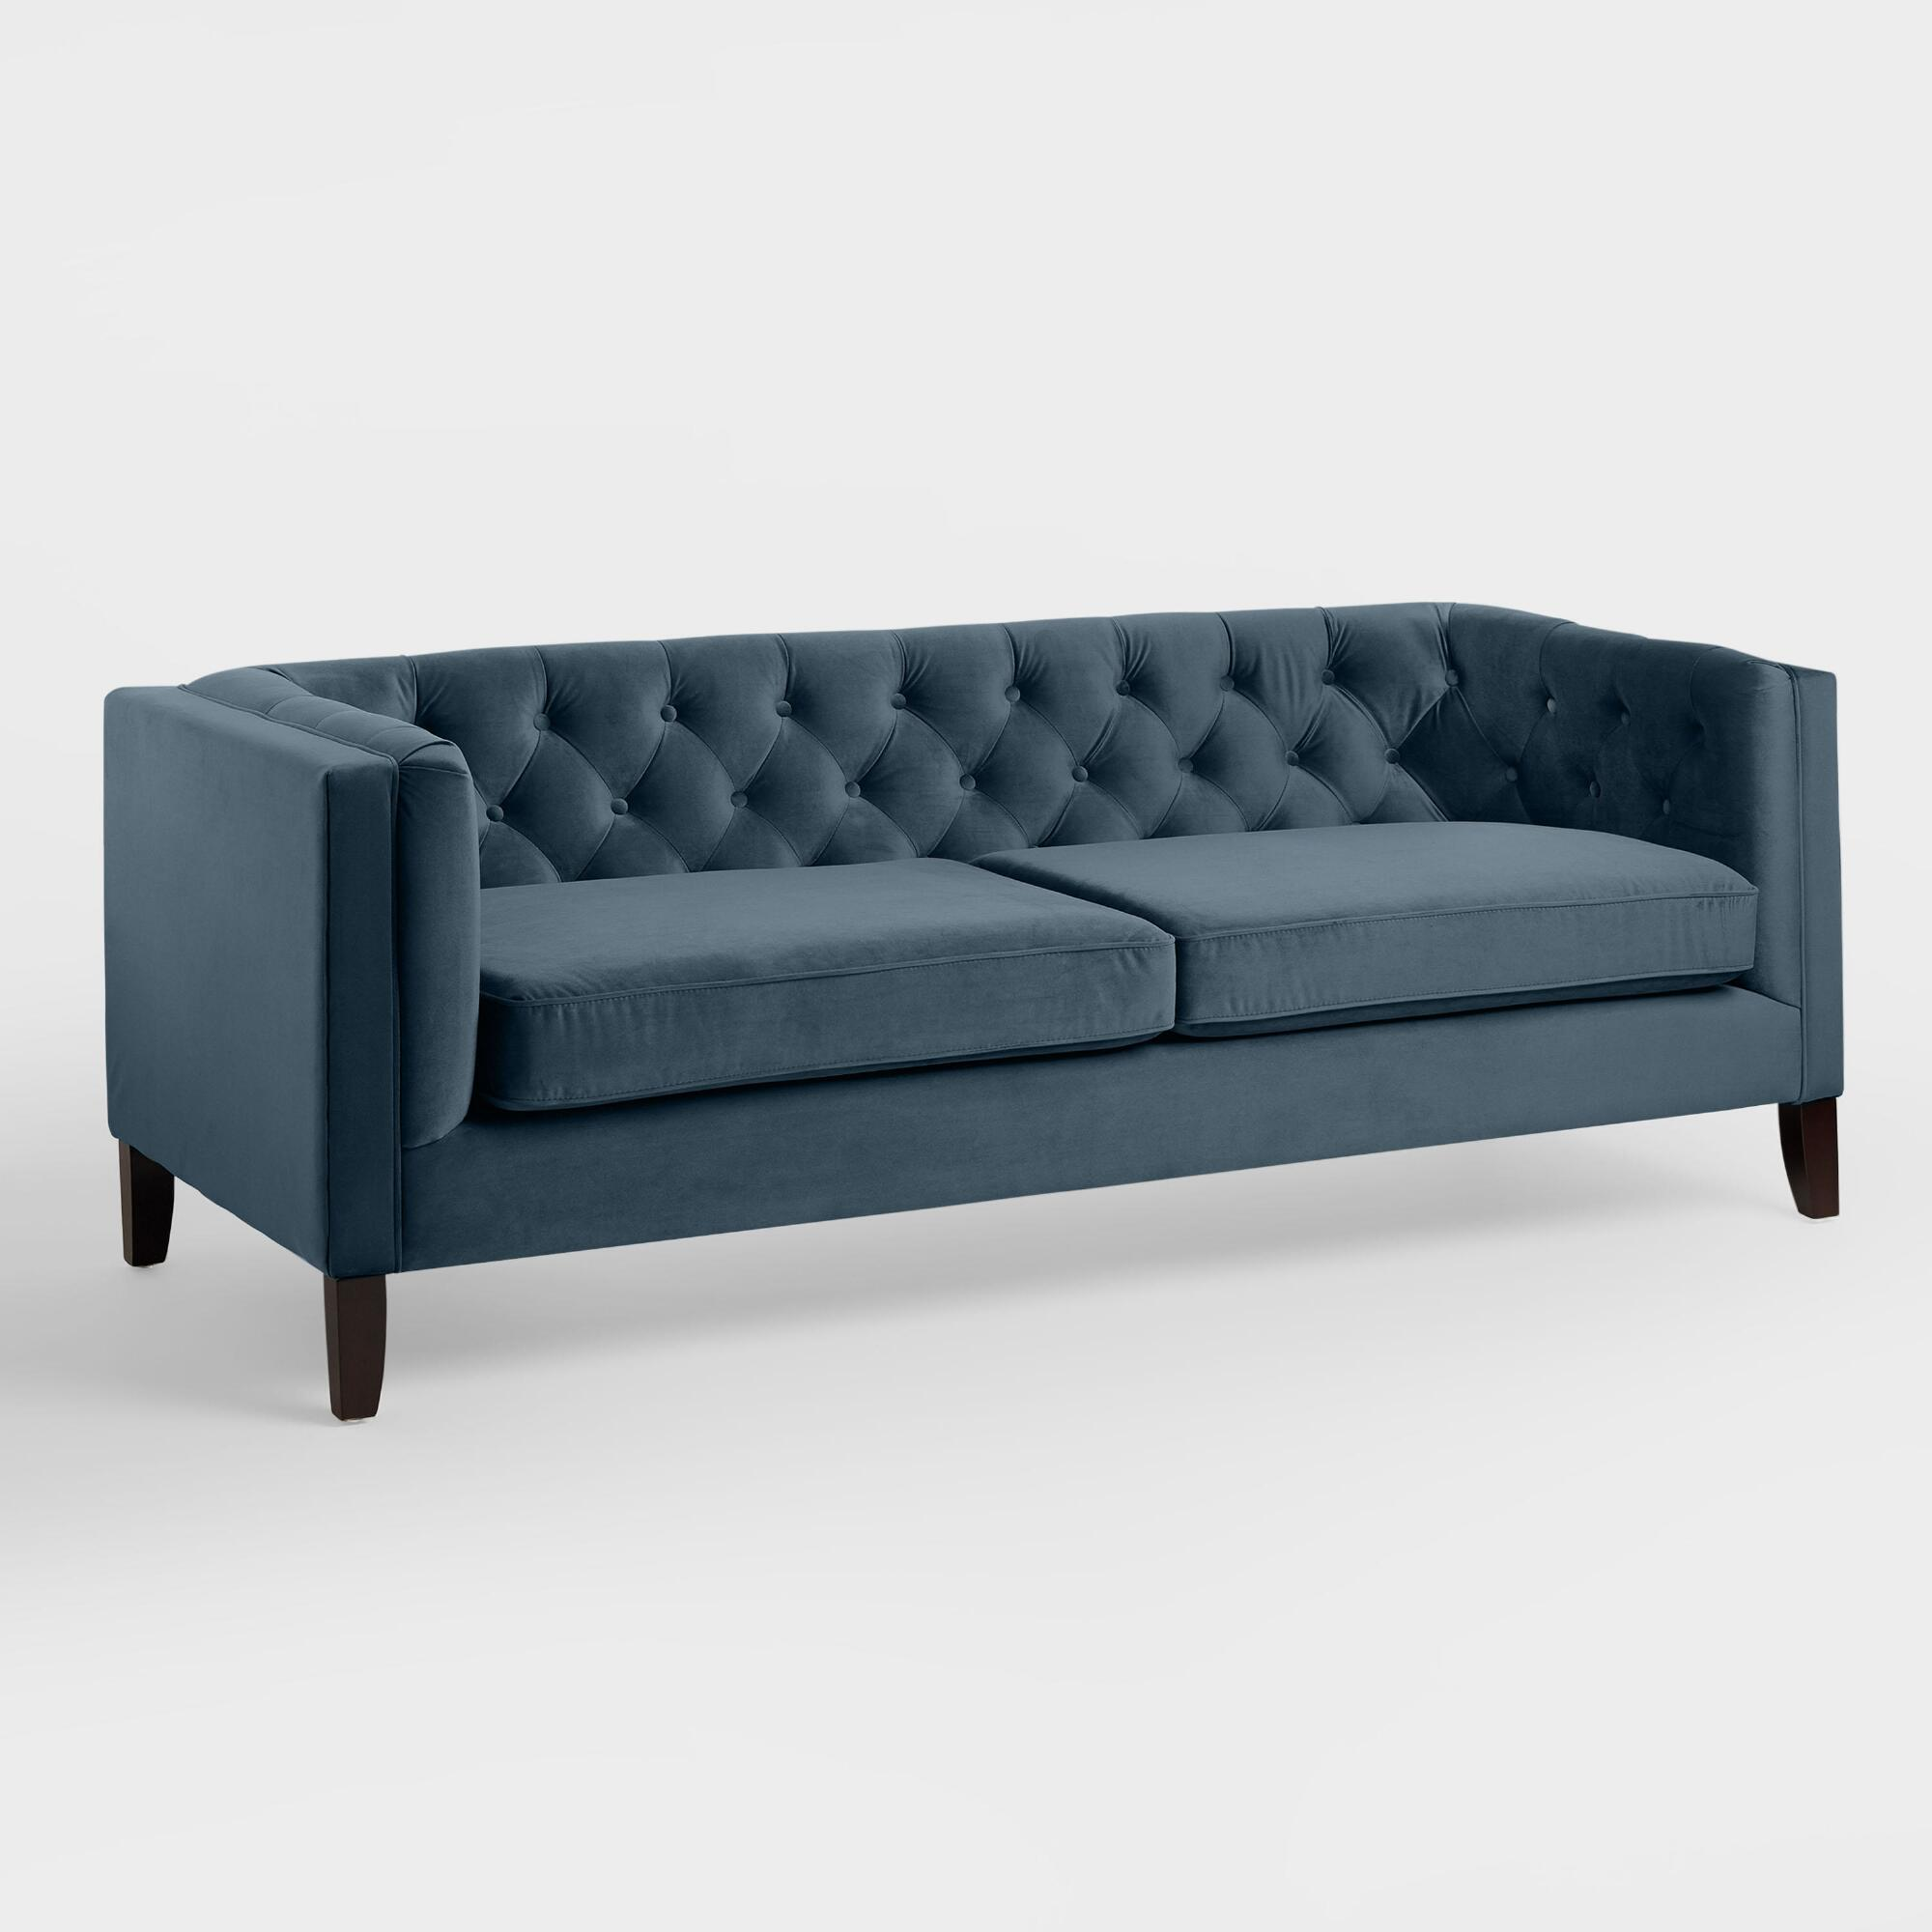 midnight blue velvet kendall sofa world market. Black Bedroom Furniture Sets. Home Design Ideas